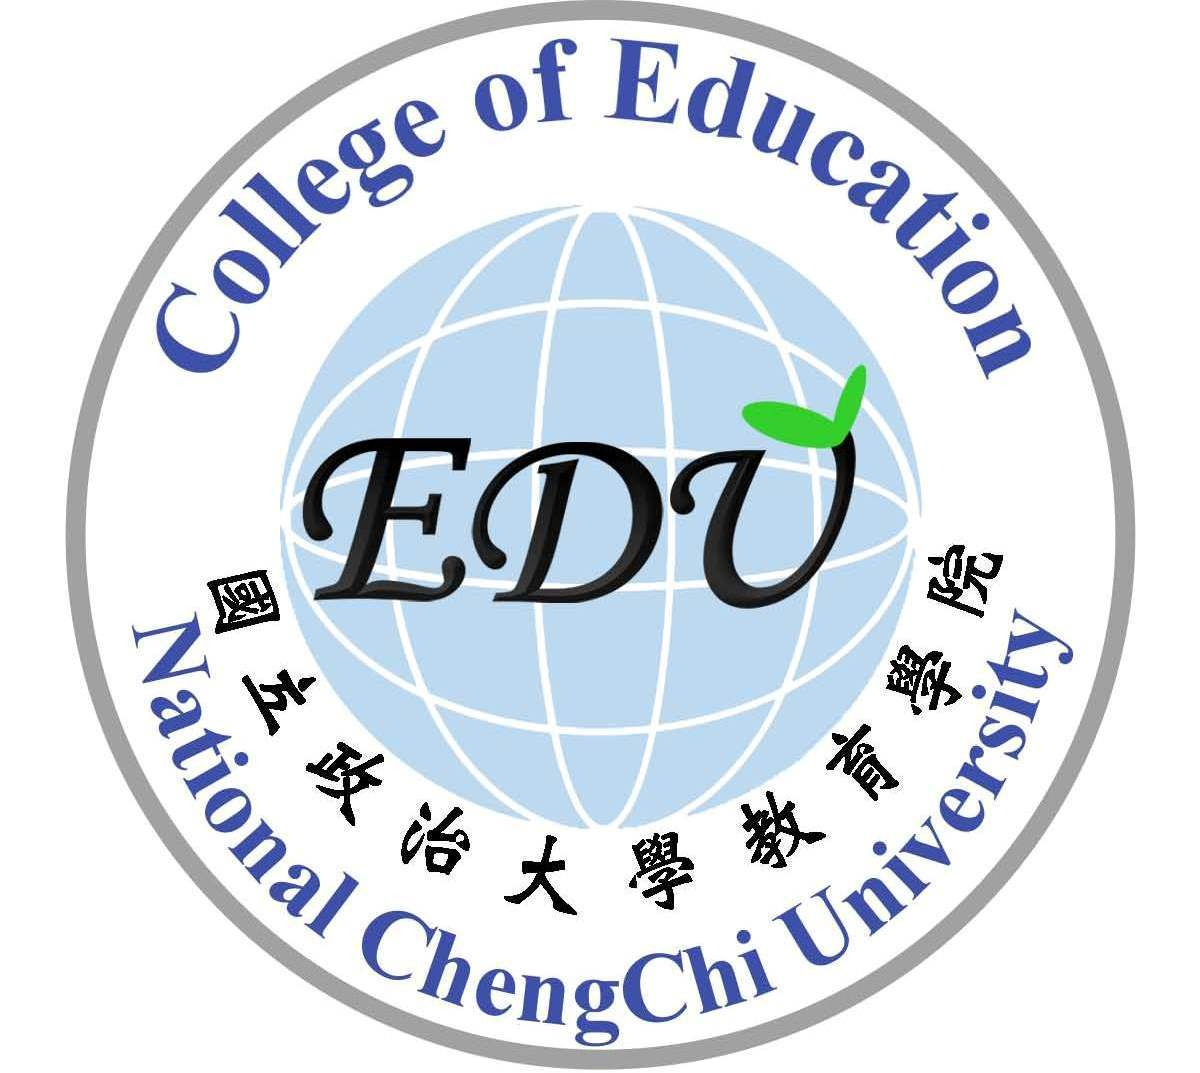 LOGO - College of Education